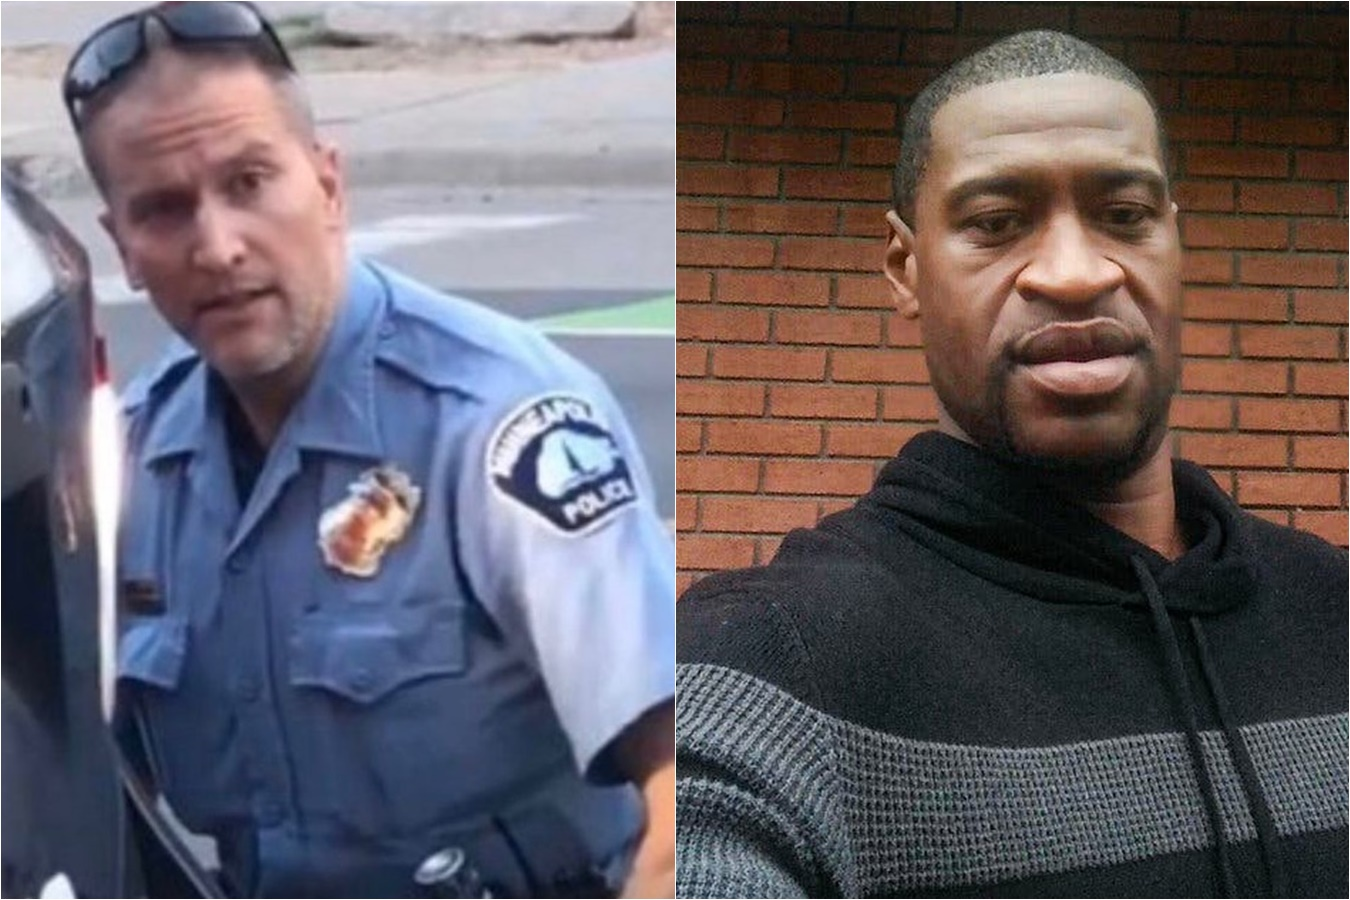 Fired Minneapolis Officer Derek Chauvin Charged With Murder In The Death Of George Floyd